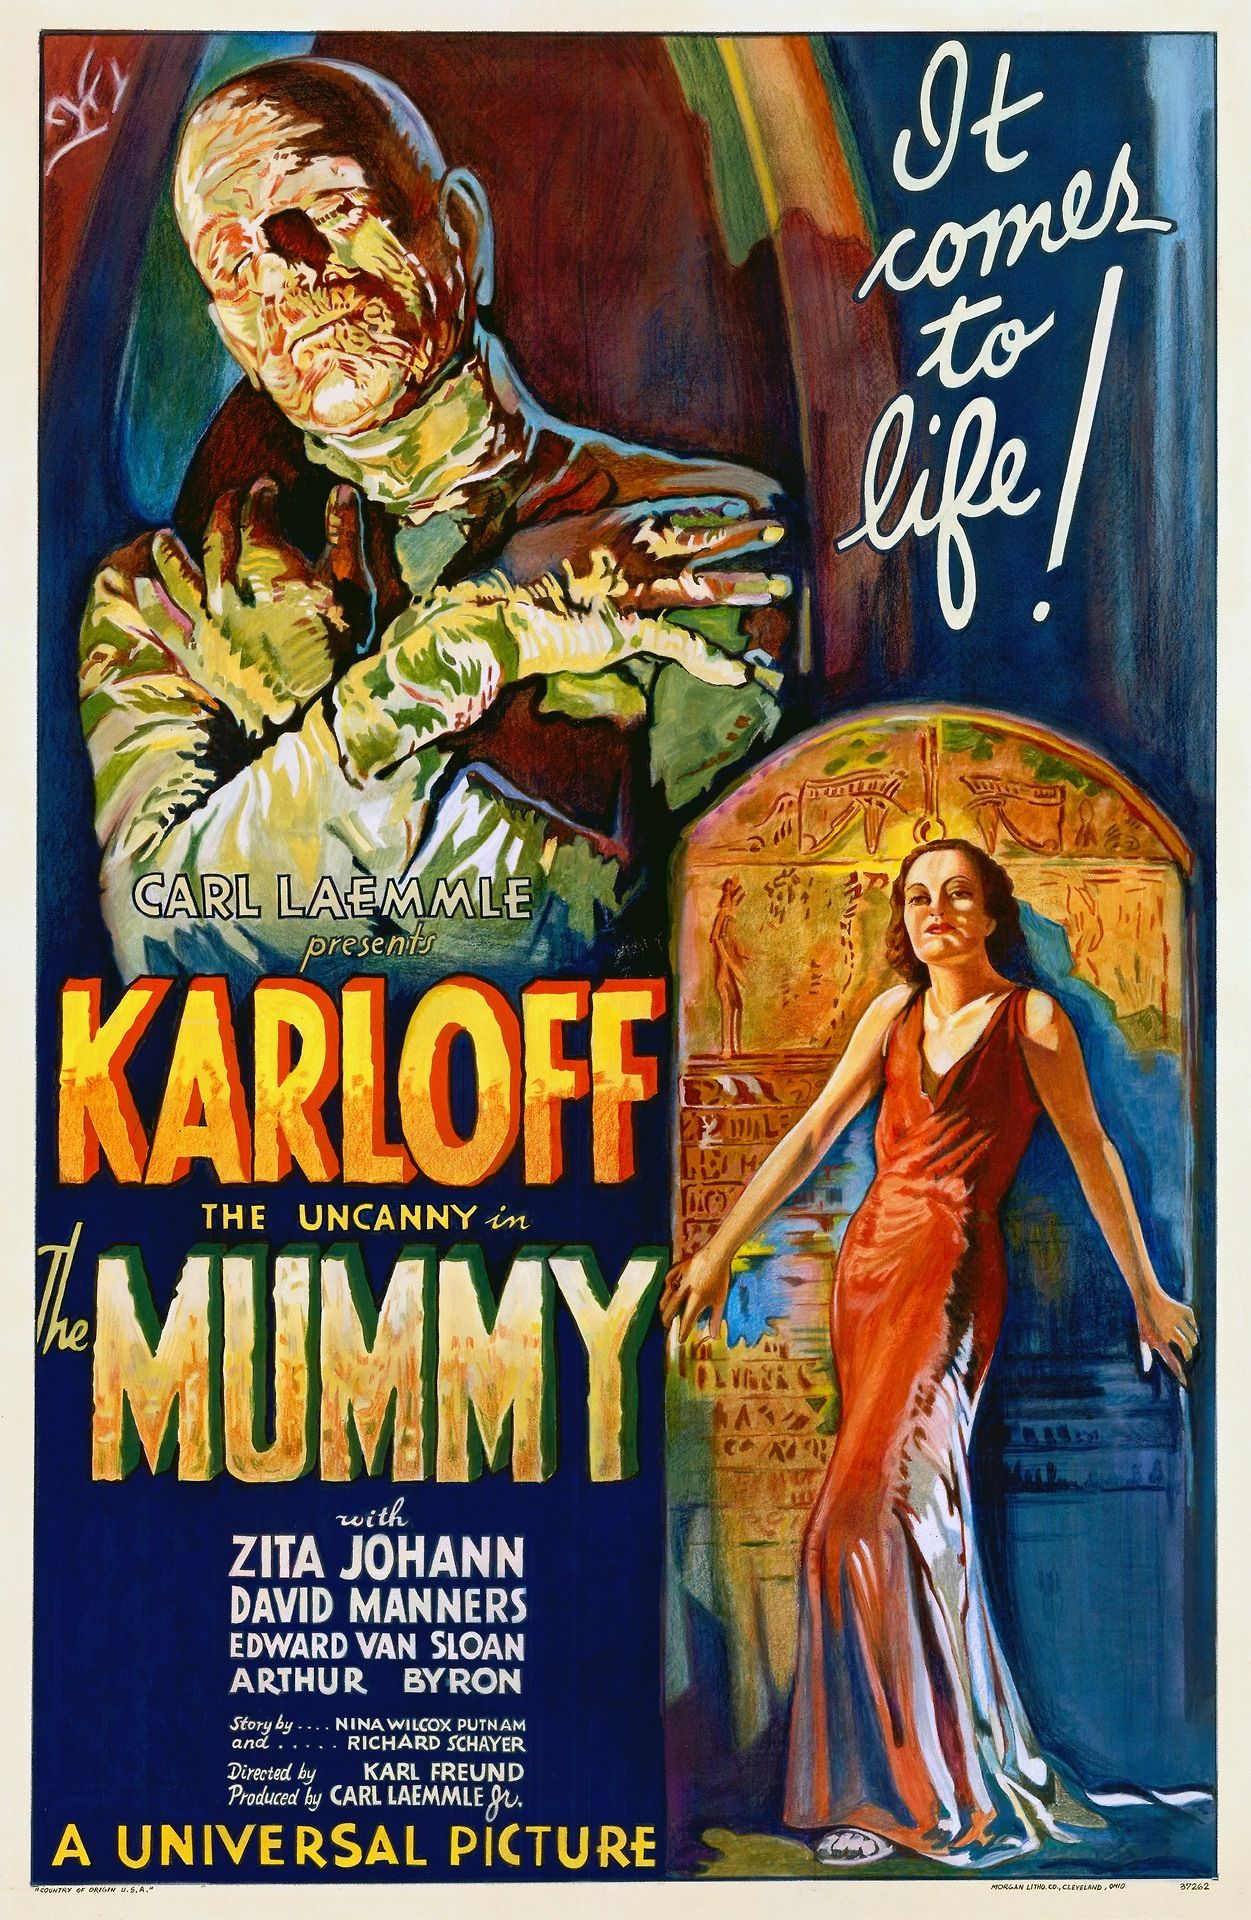 Universal Classic Horror Film Posters 1920s 1950s Posterism